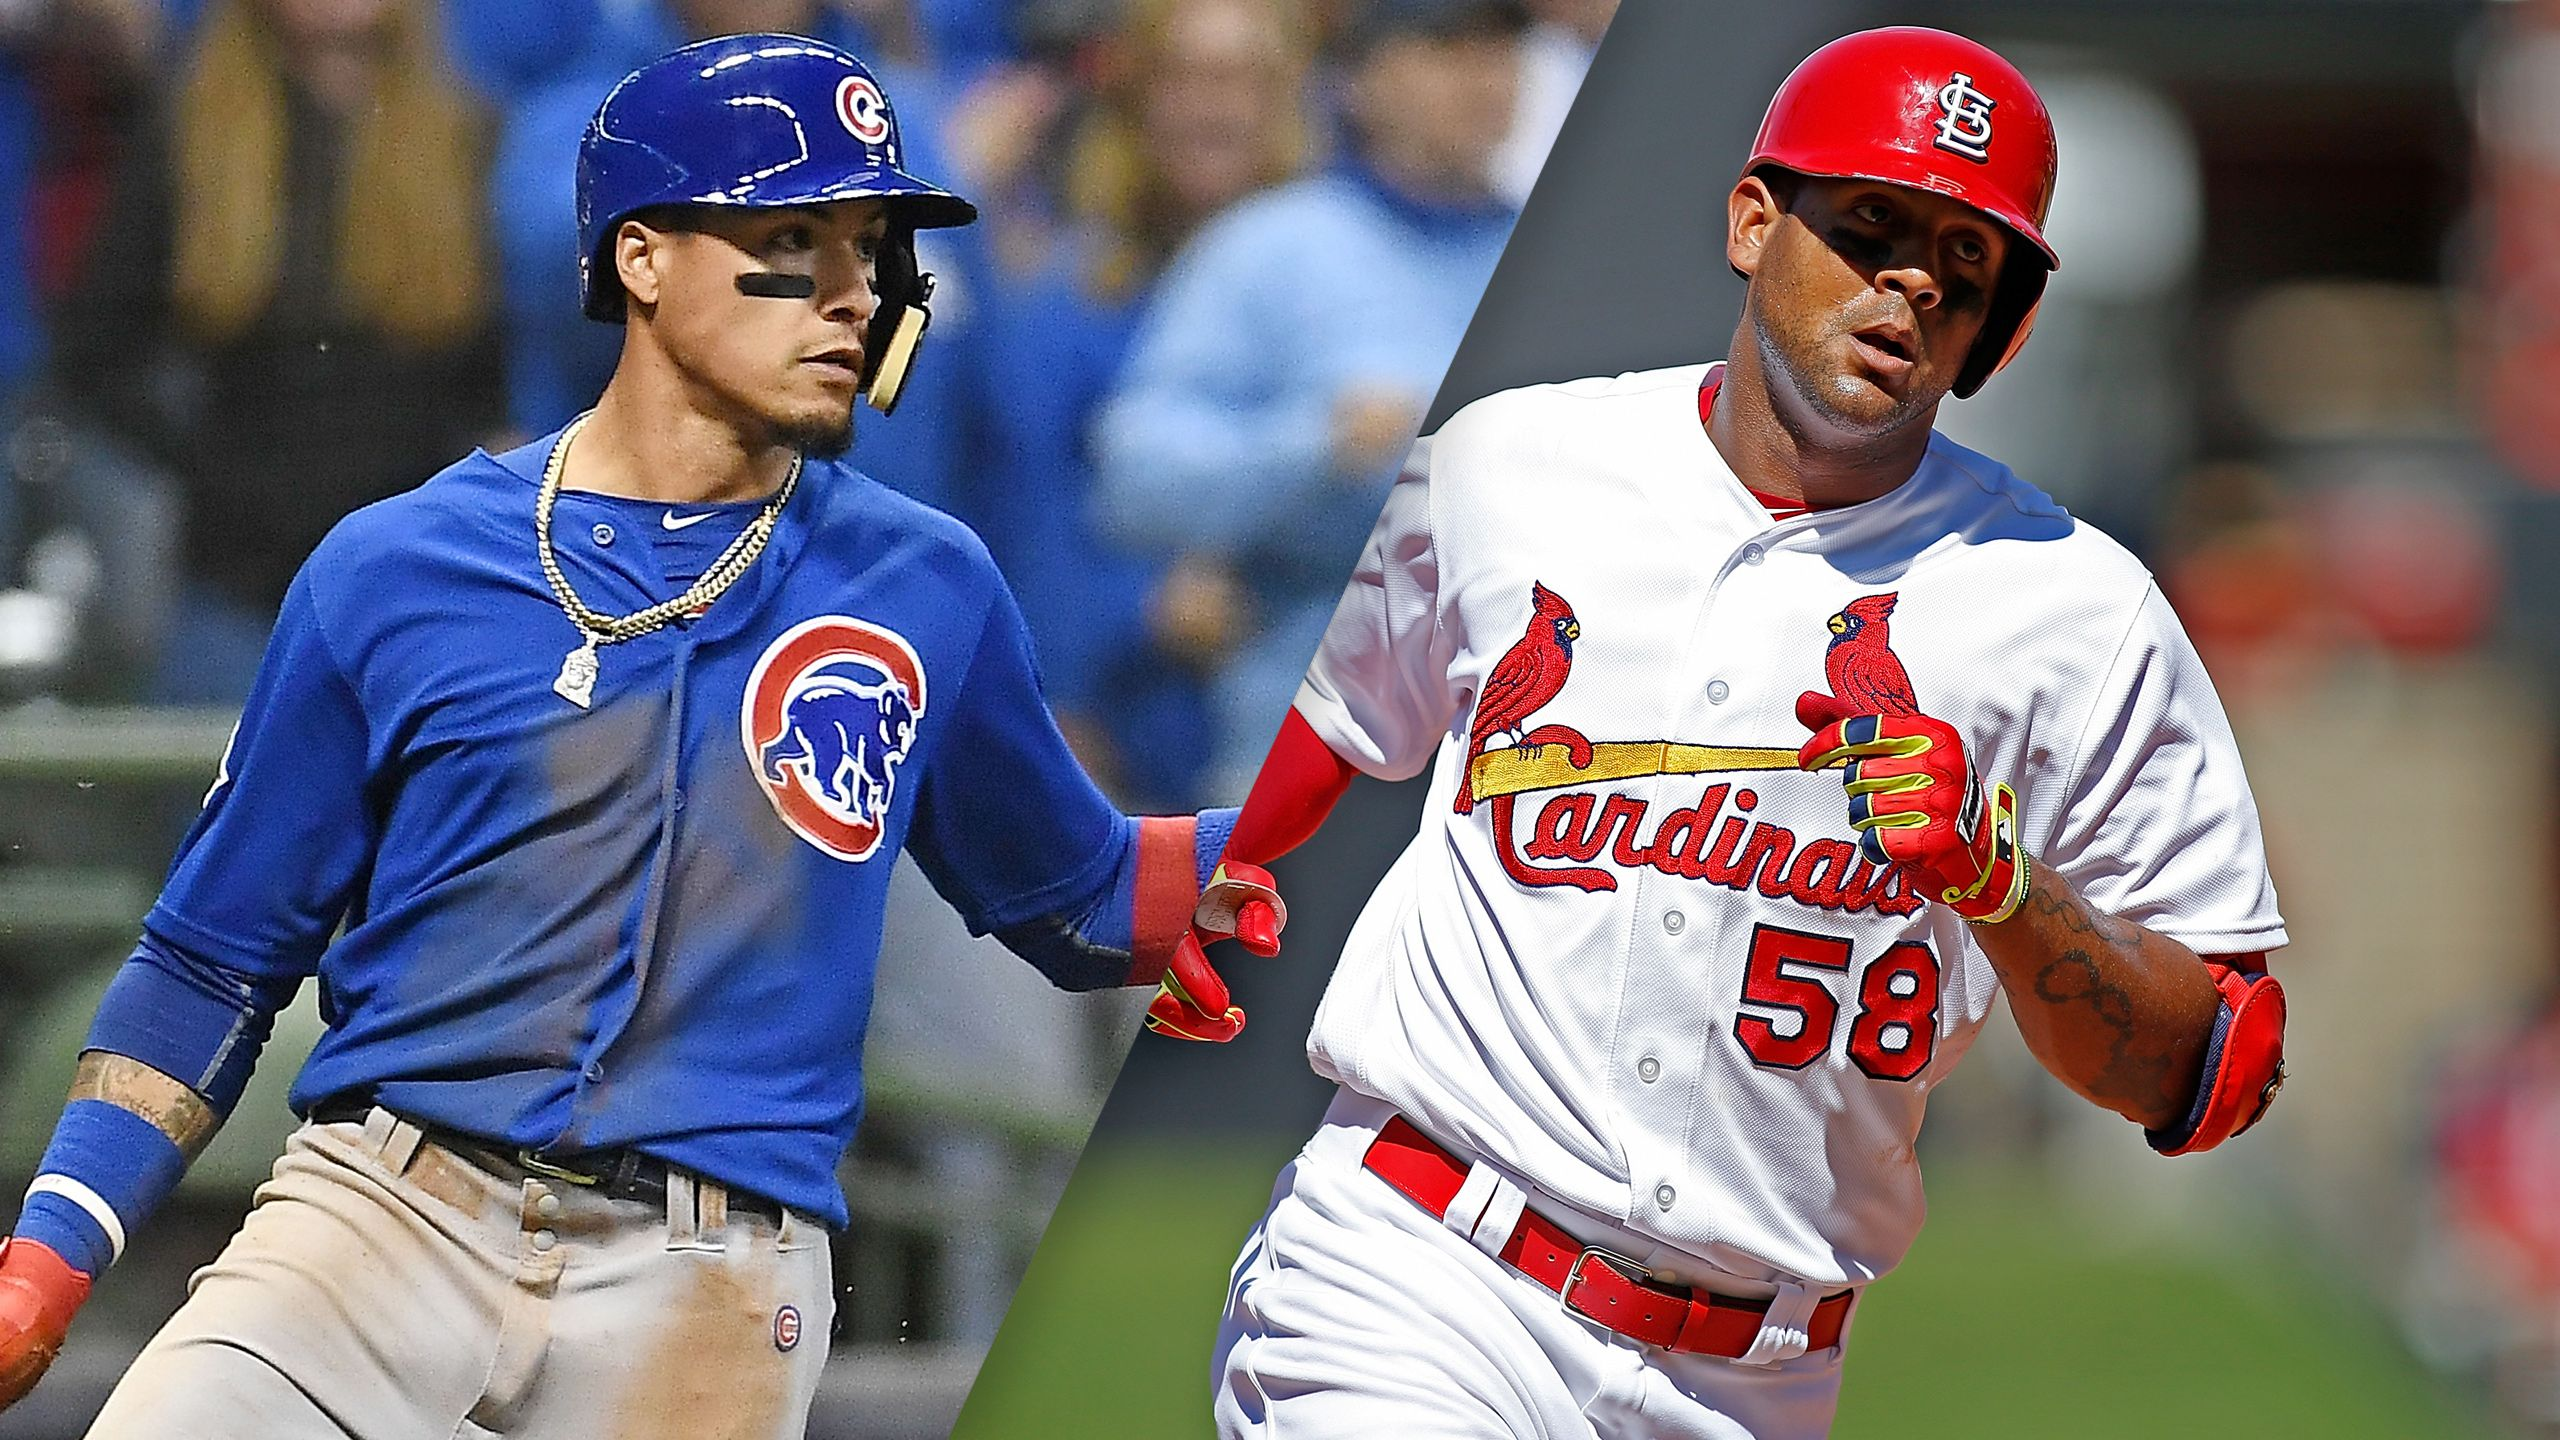 Chicago Cubs vs. St. Louis Cardinals (re-air)